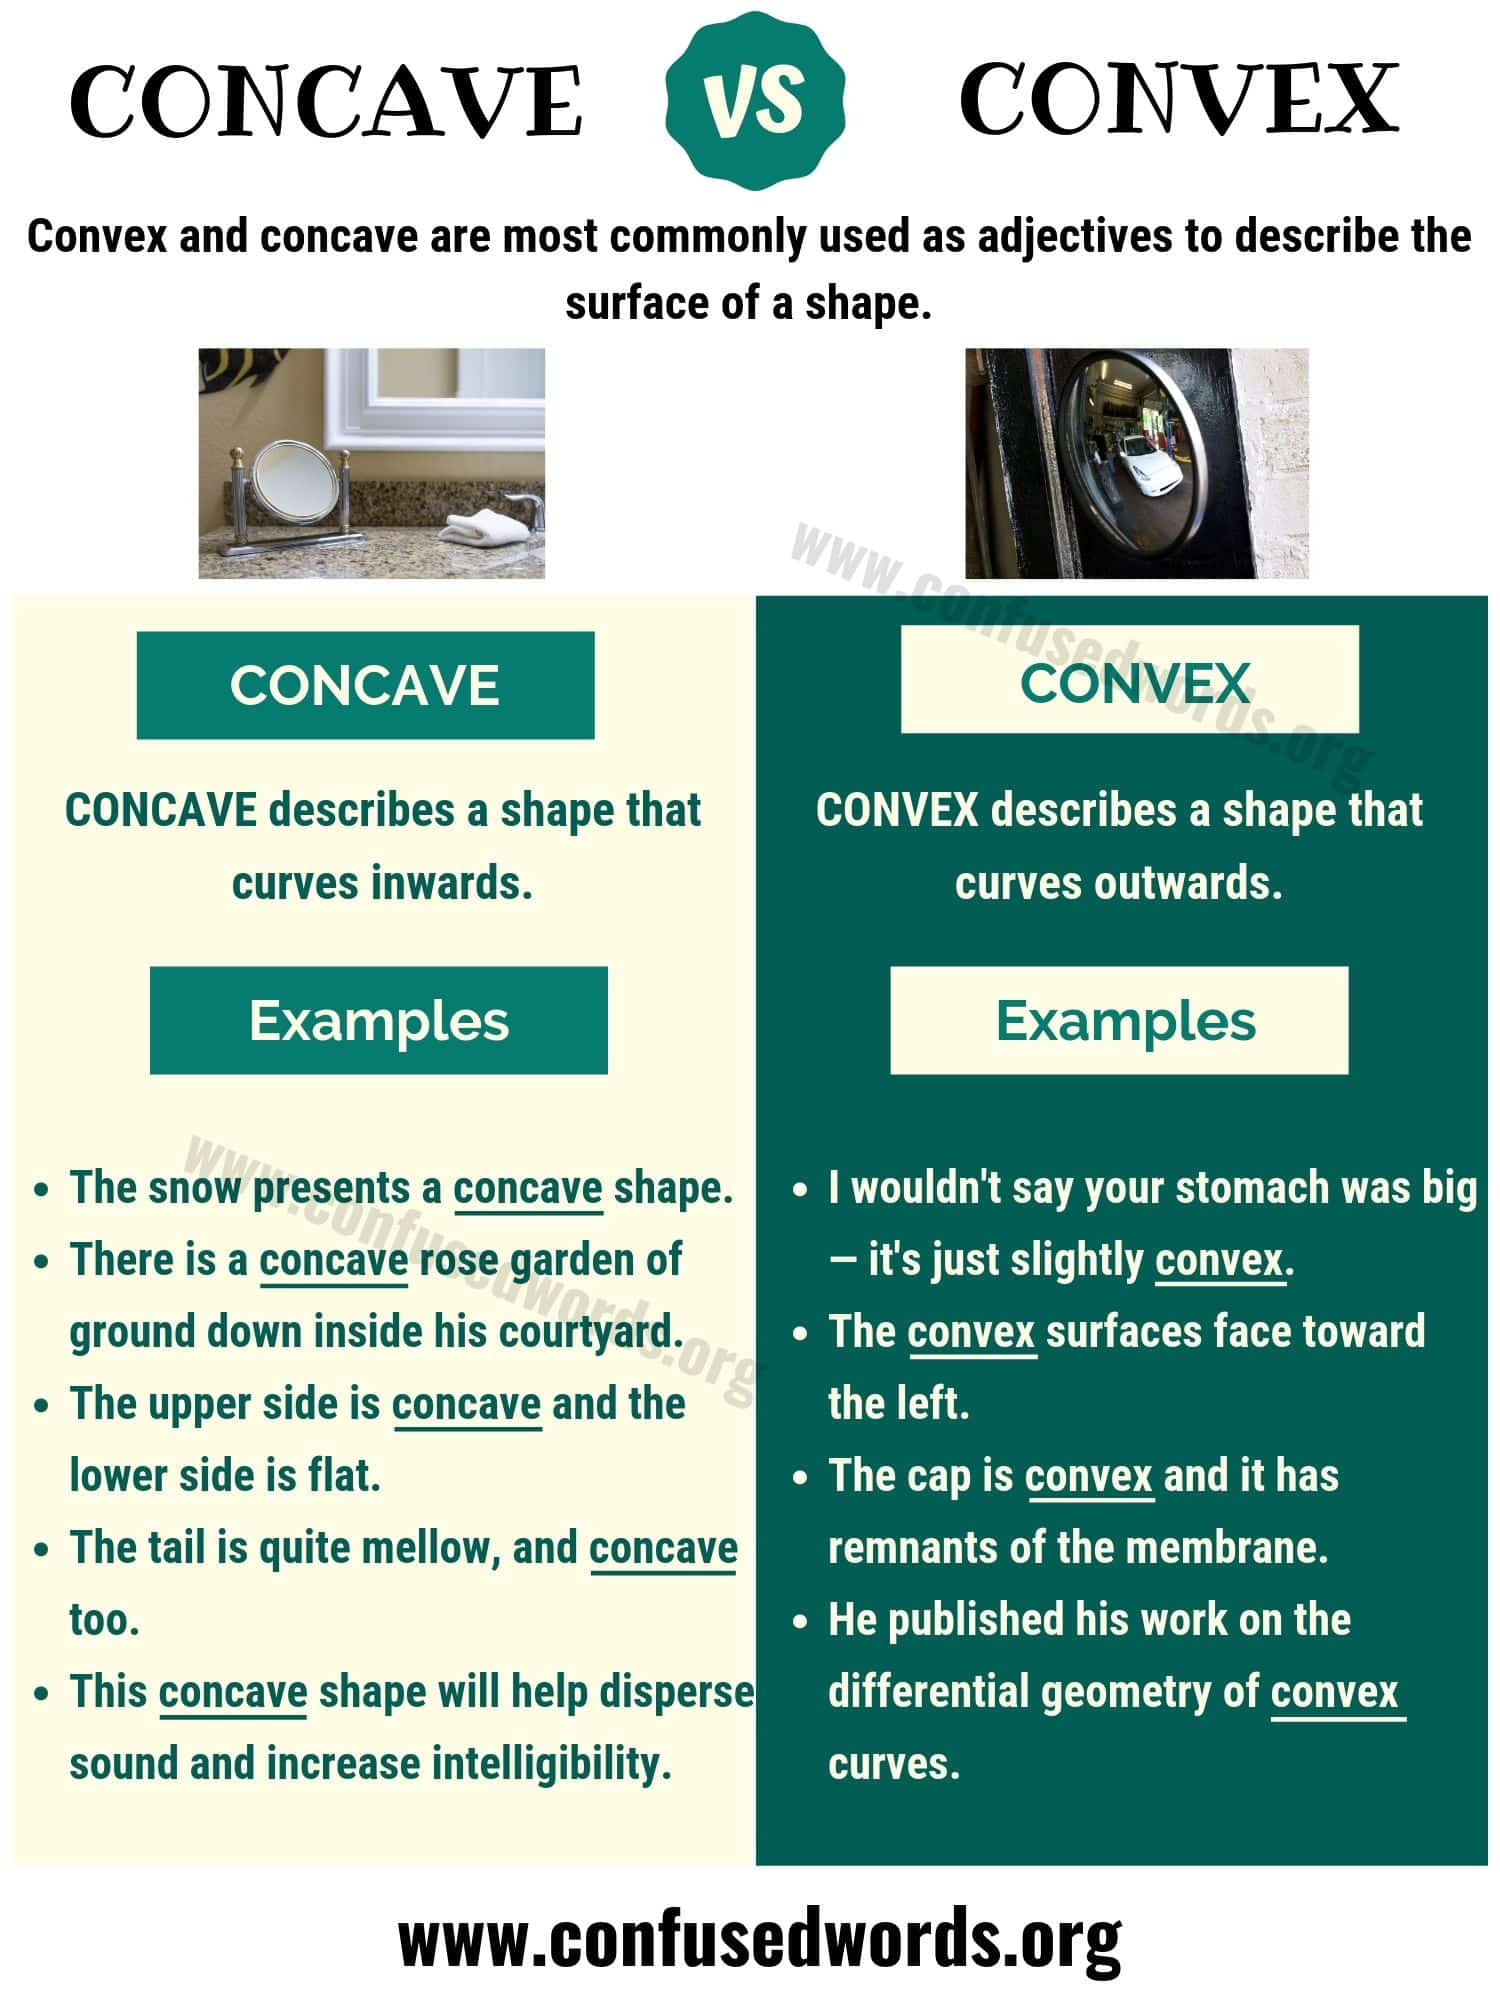 Concave Vs Convex How To Use Convex Vs Concave Correctly